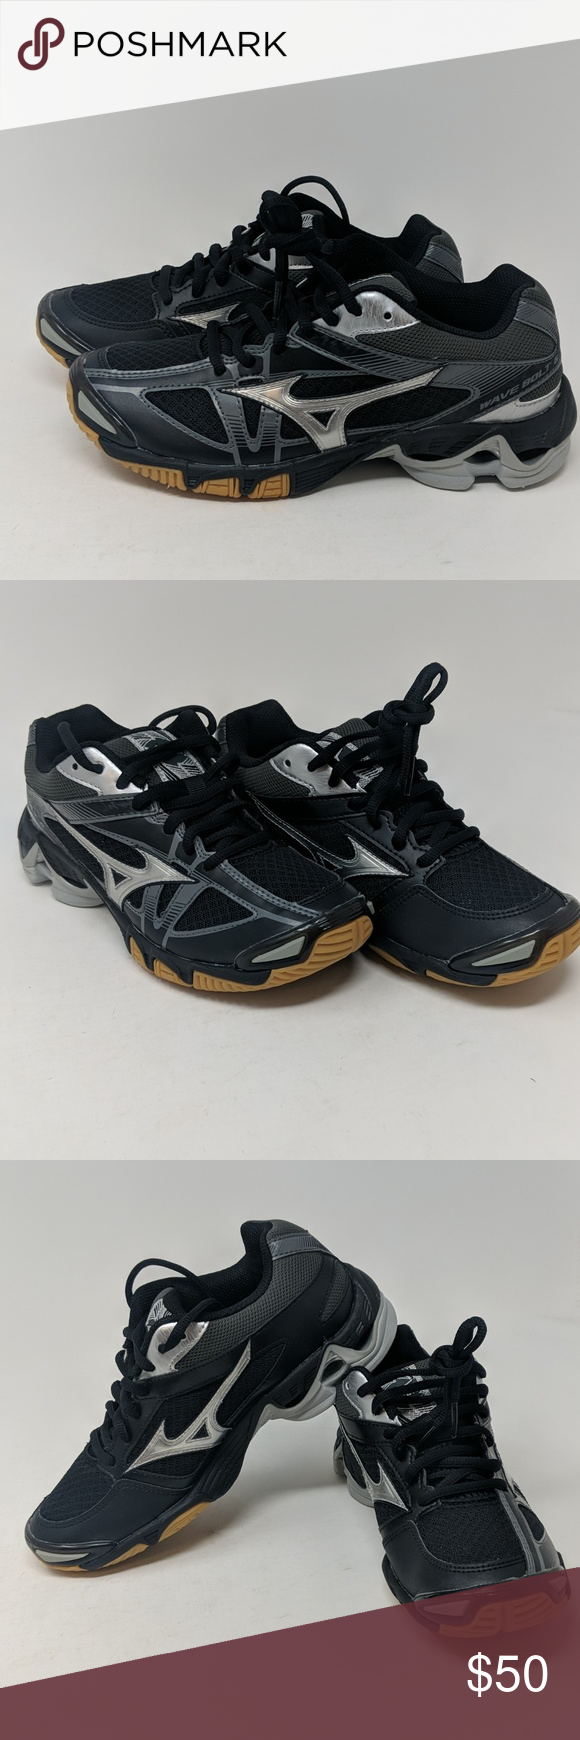 Mizubo Wave Bolt 6 Volleyba Shoes Nwt Mizuno Shoes Shoes Volleyball Shoes